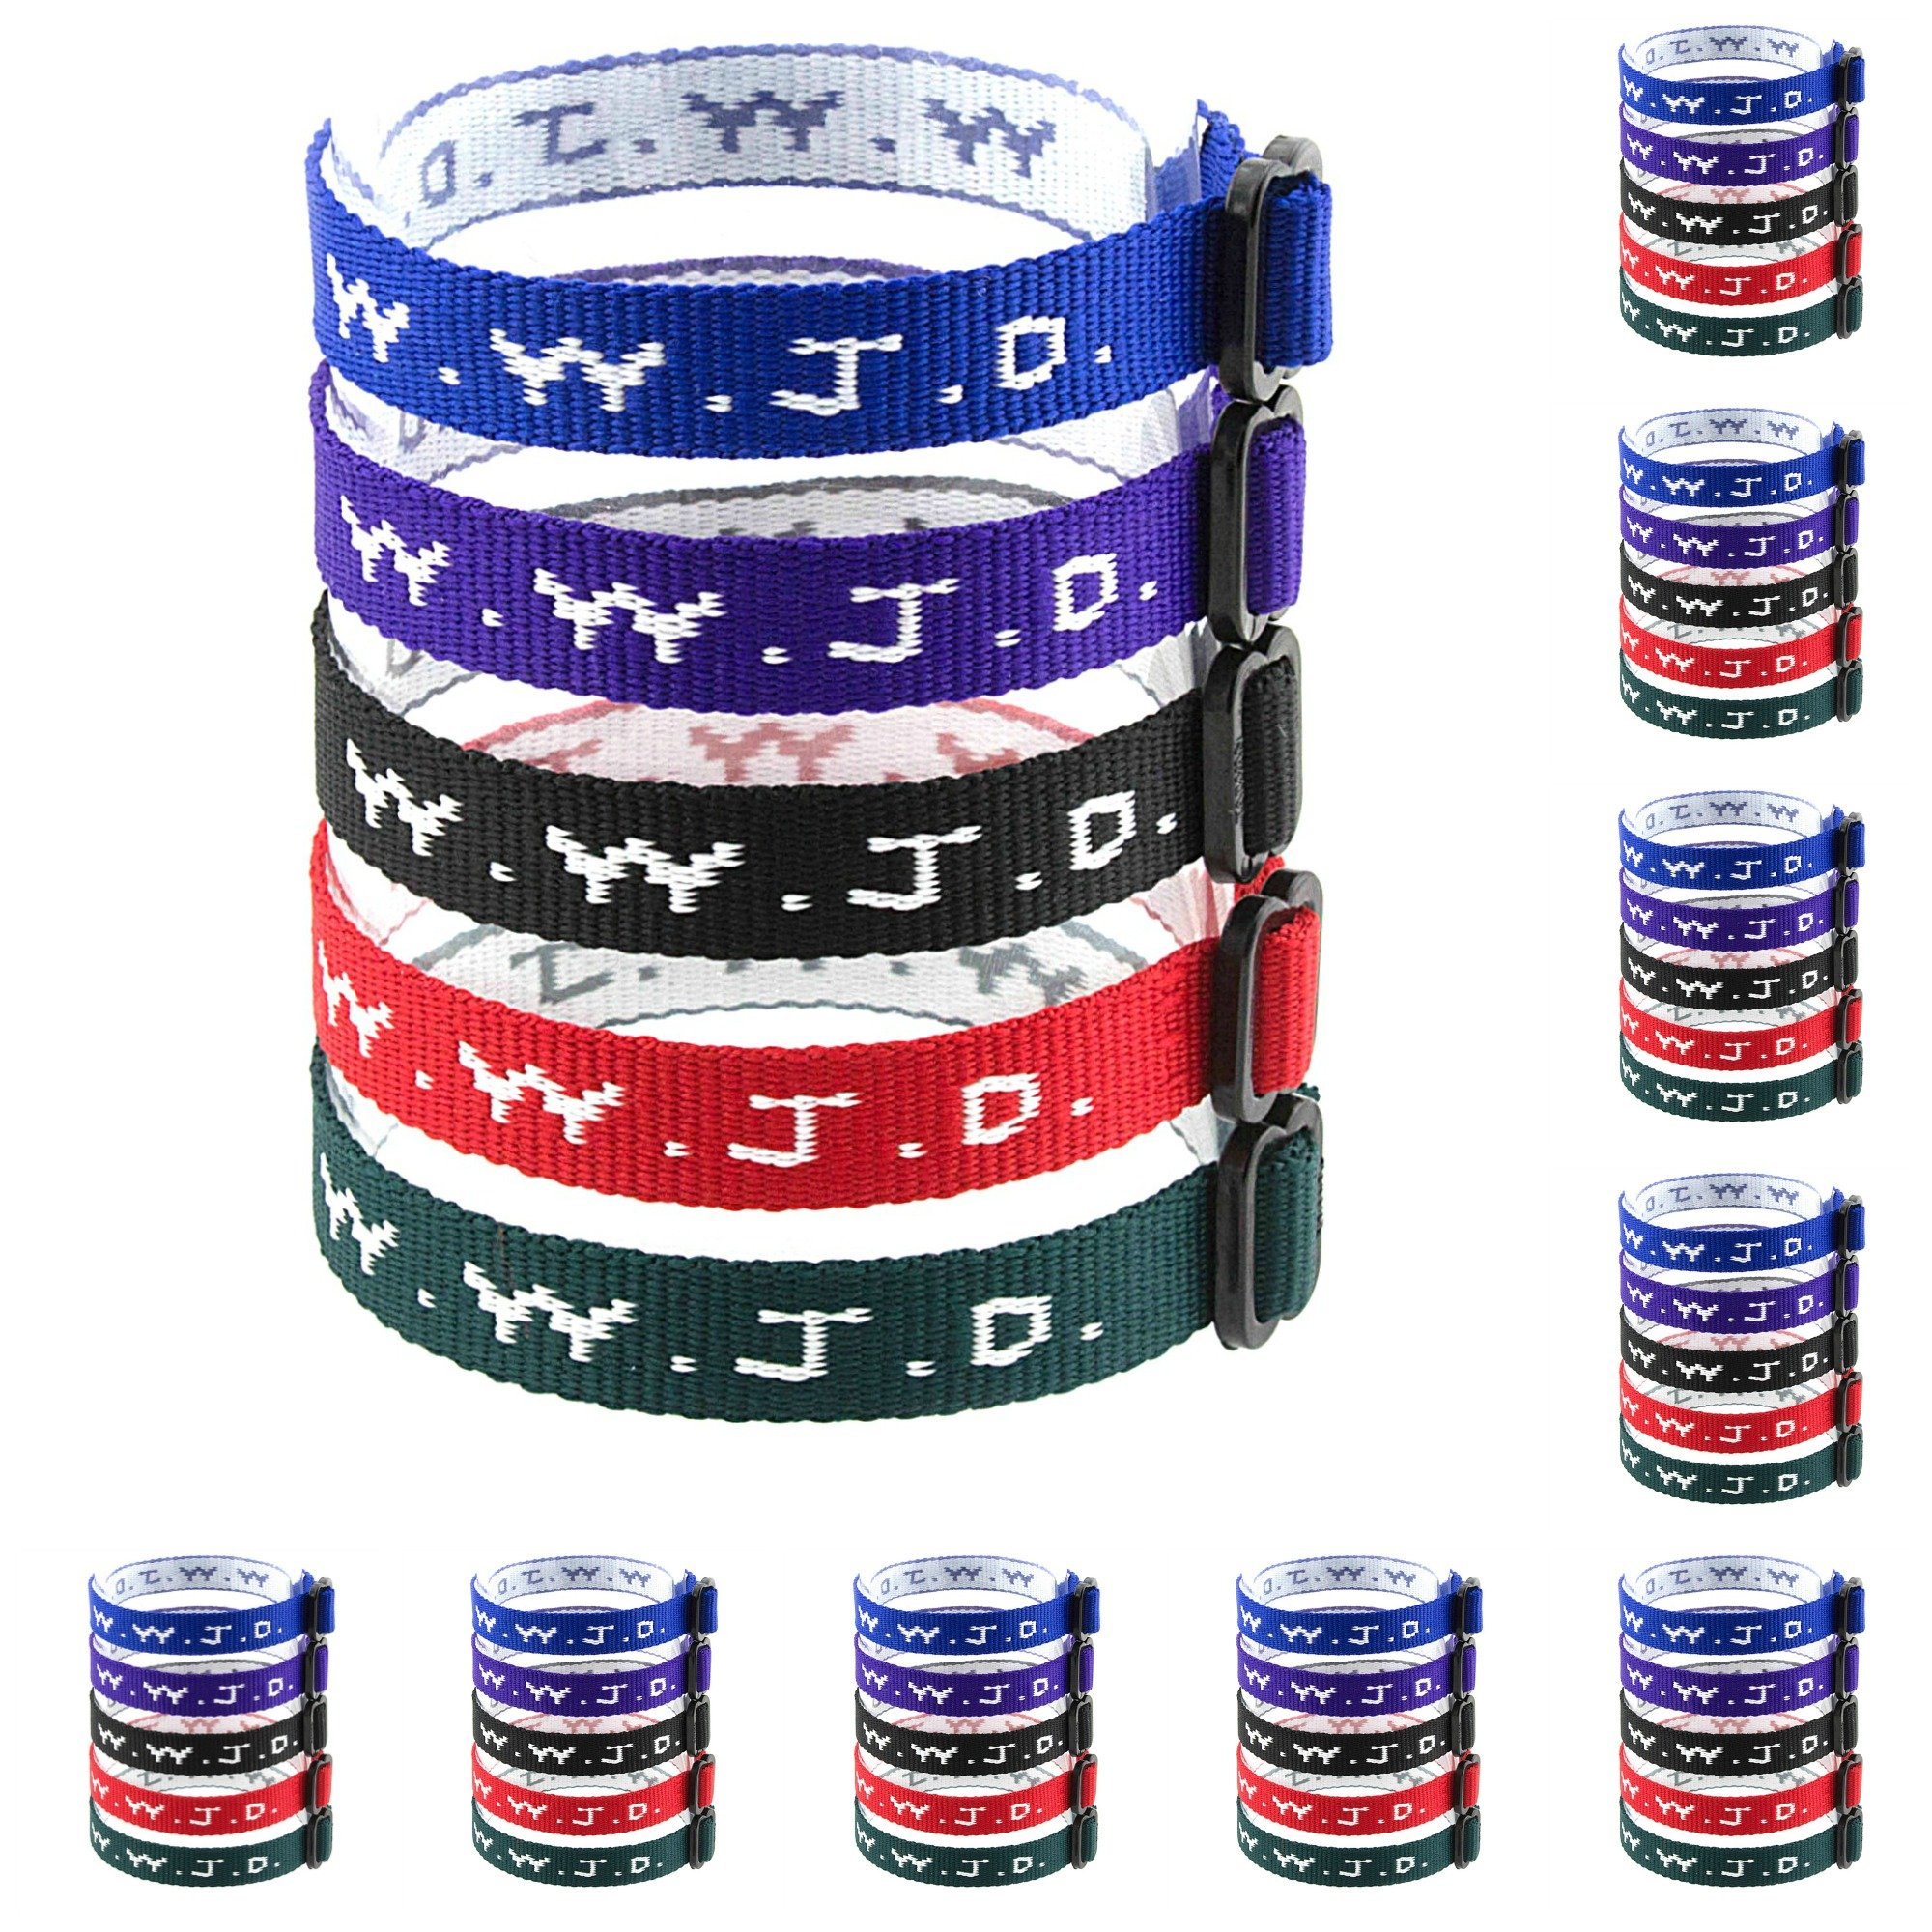 100 WWJD Bracelets - What Would Jesus Do Woven Wristbands Per Pack - Religious Christian WWJD Bracelet for fundraisers Red, Green, Blue, Black and Purple Colors Perfect for Men Women Boys and Girls